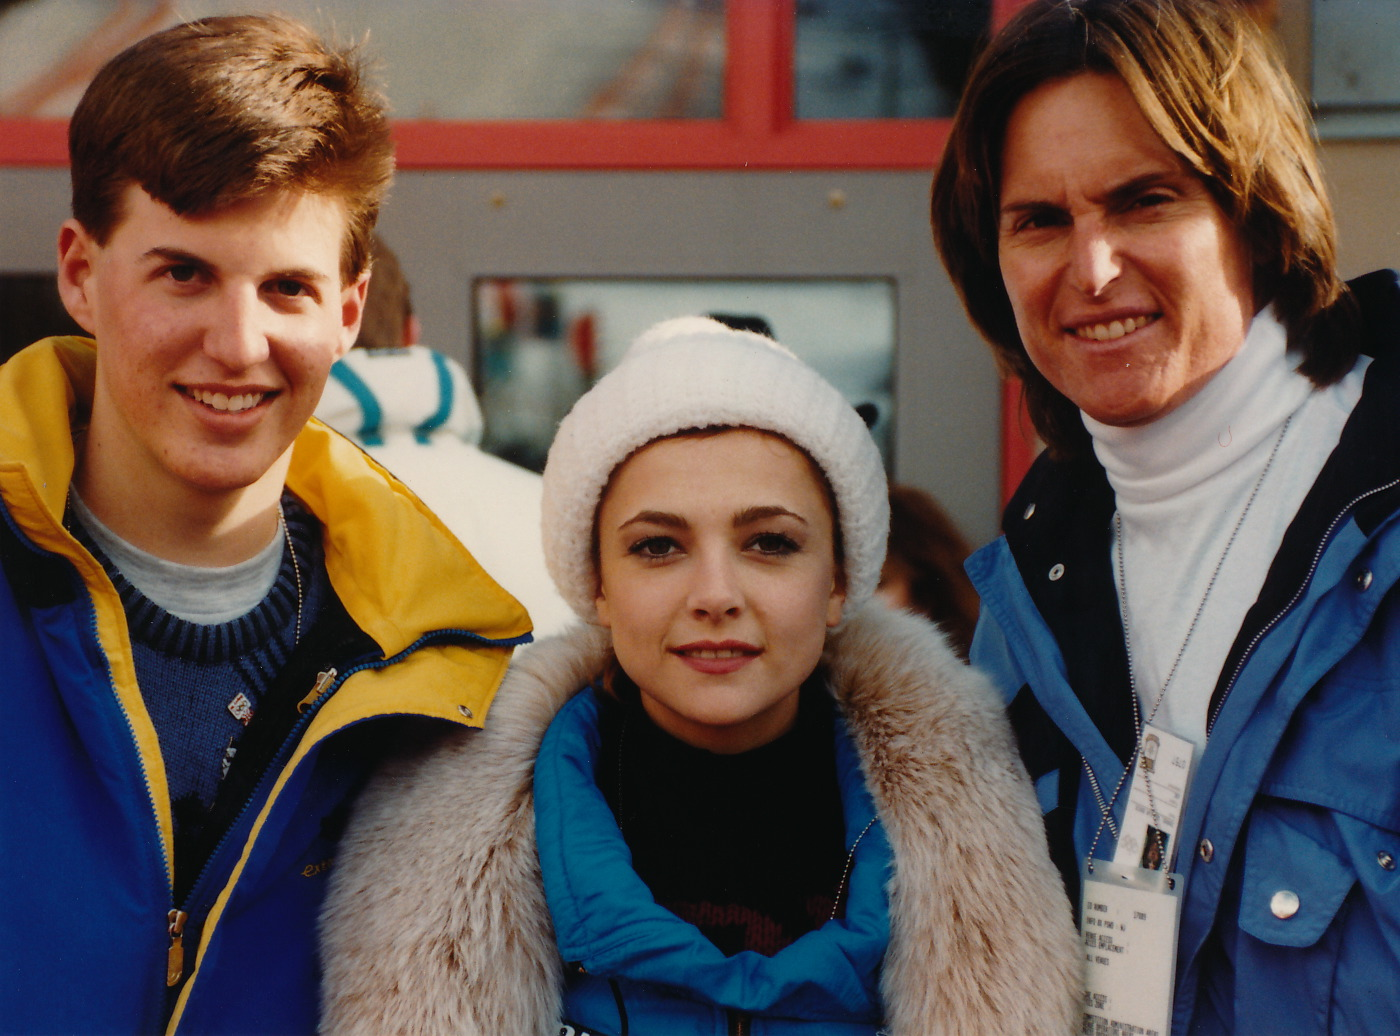 Jeff with Emma Samms and Bruce Jenner in Calgary